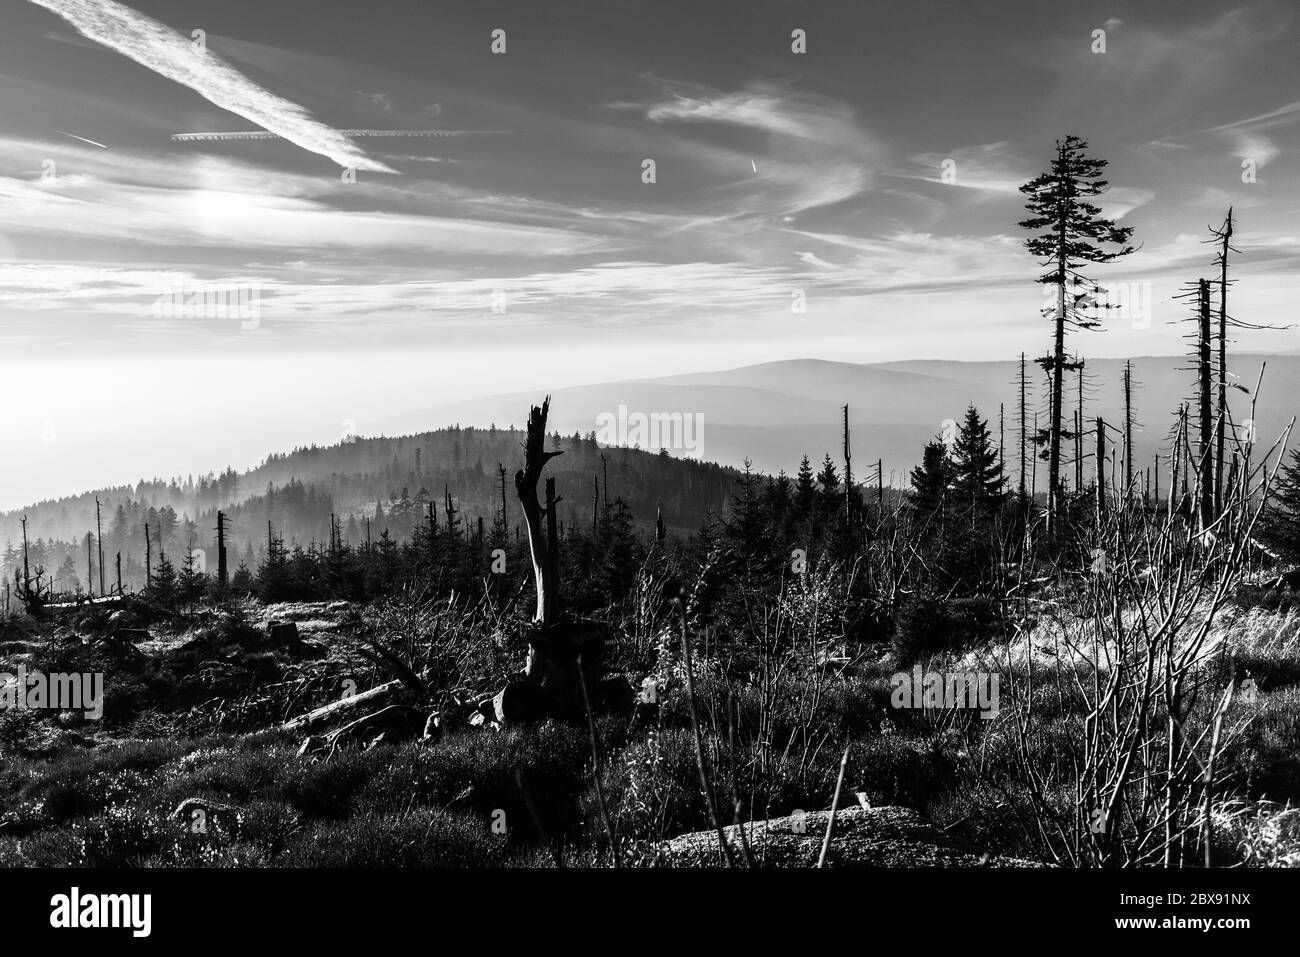 Devasted forest in caues of bark beetle infestation. Sumava National Park and Bavarian Forest, Czech republic and Germany. View from Tristolicnik, Dreisesselberg. Black and white image. Stock Photo